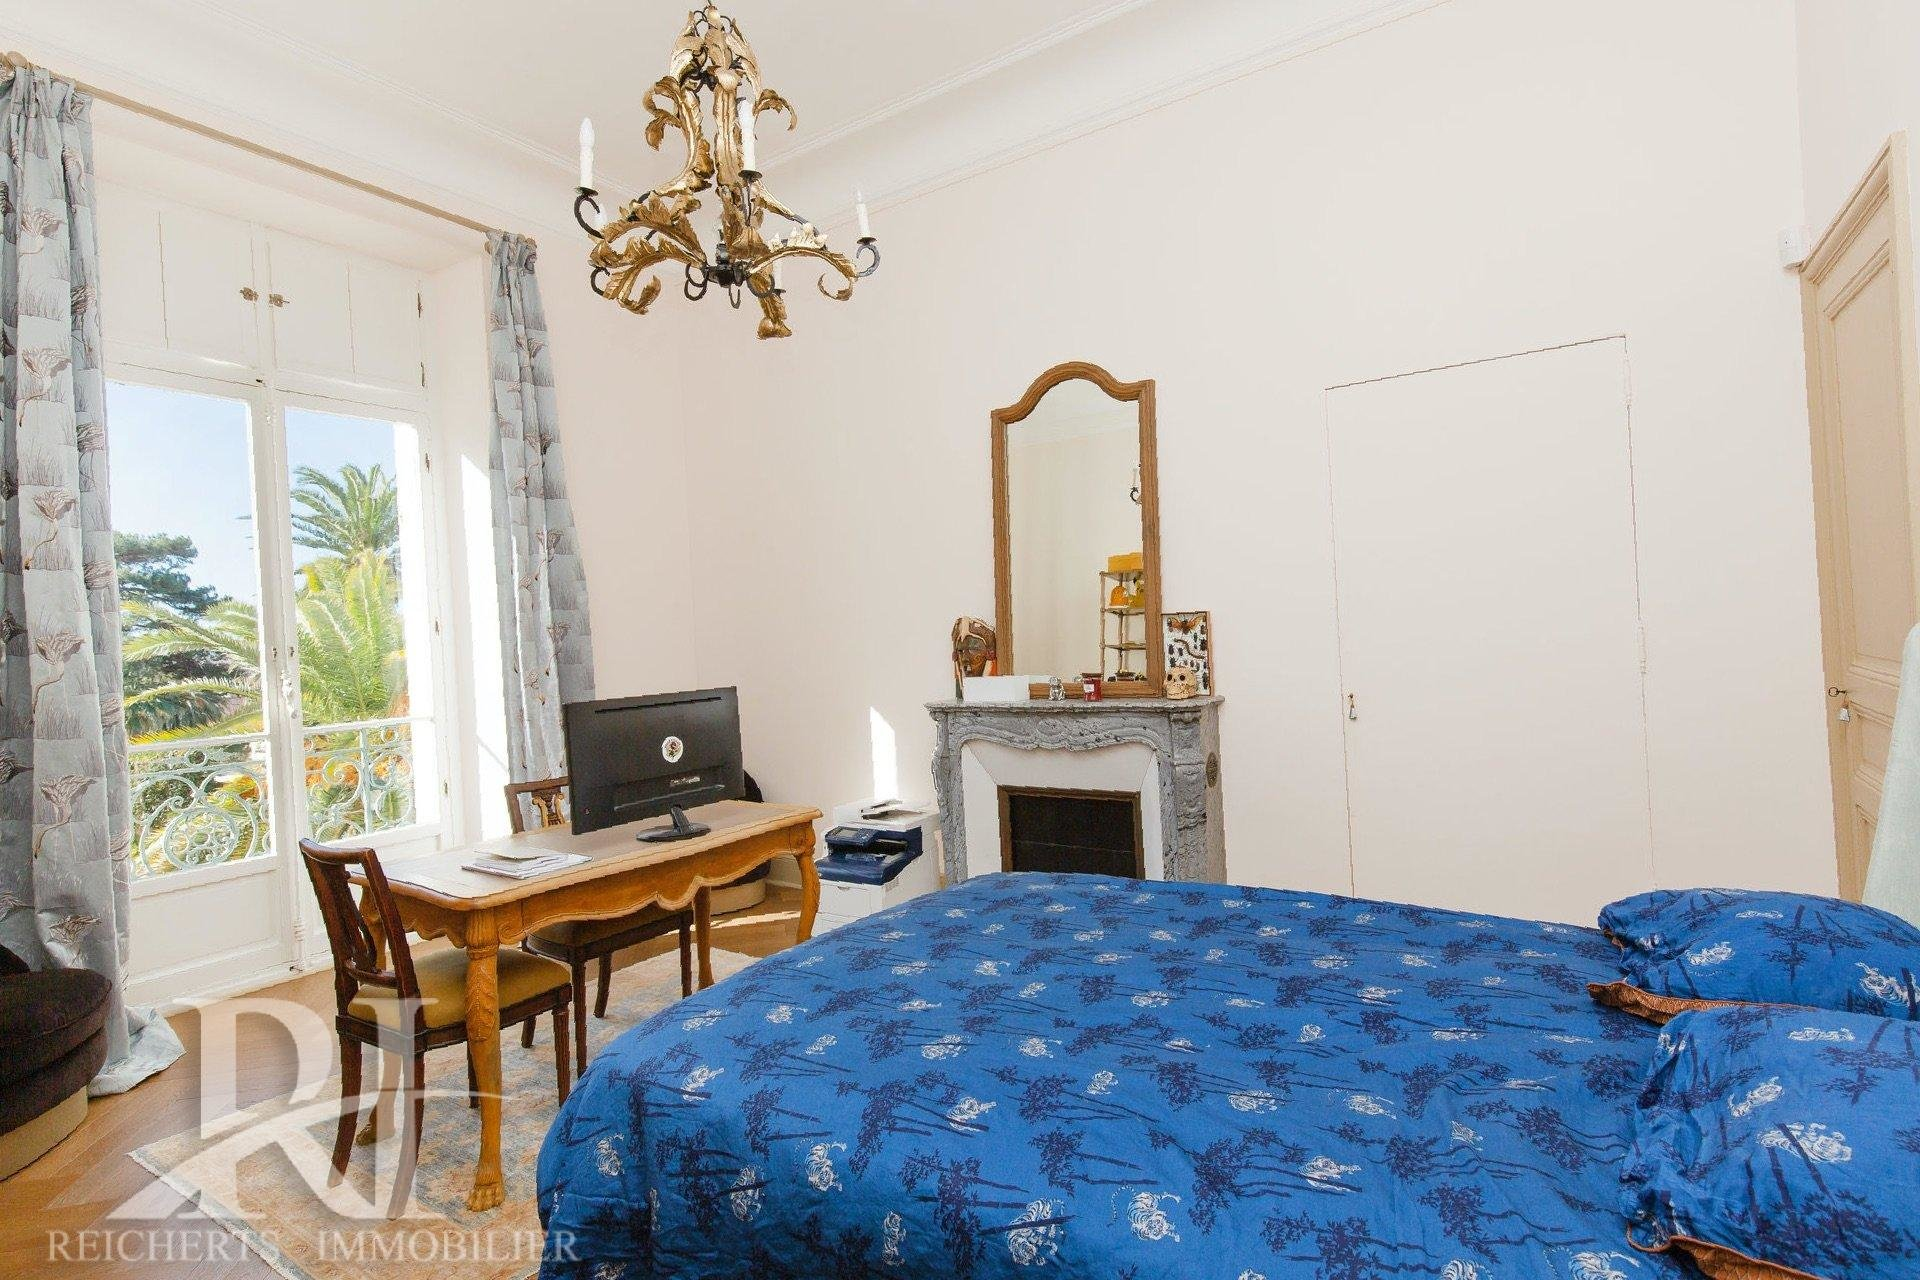 Beautiful 4 bedroom apartment 200 sqm walking distance to beaches in Cannes